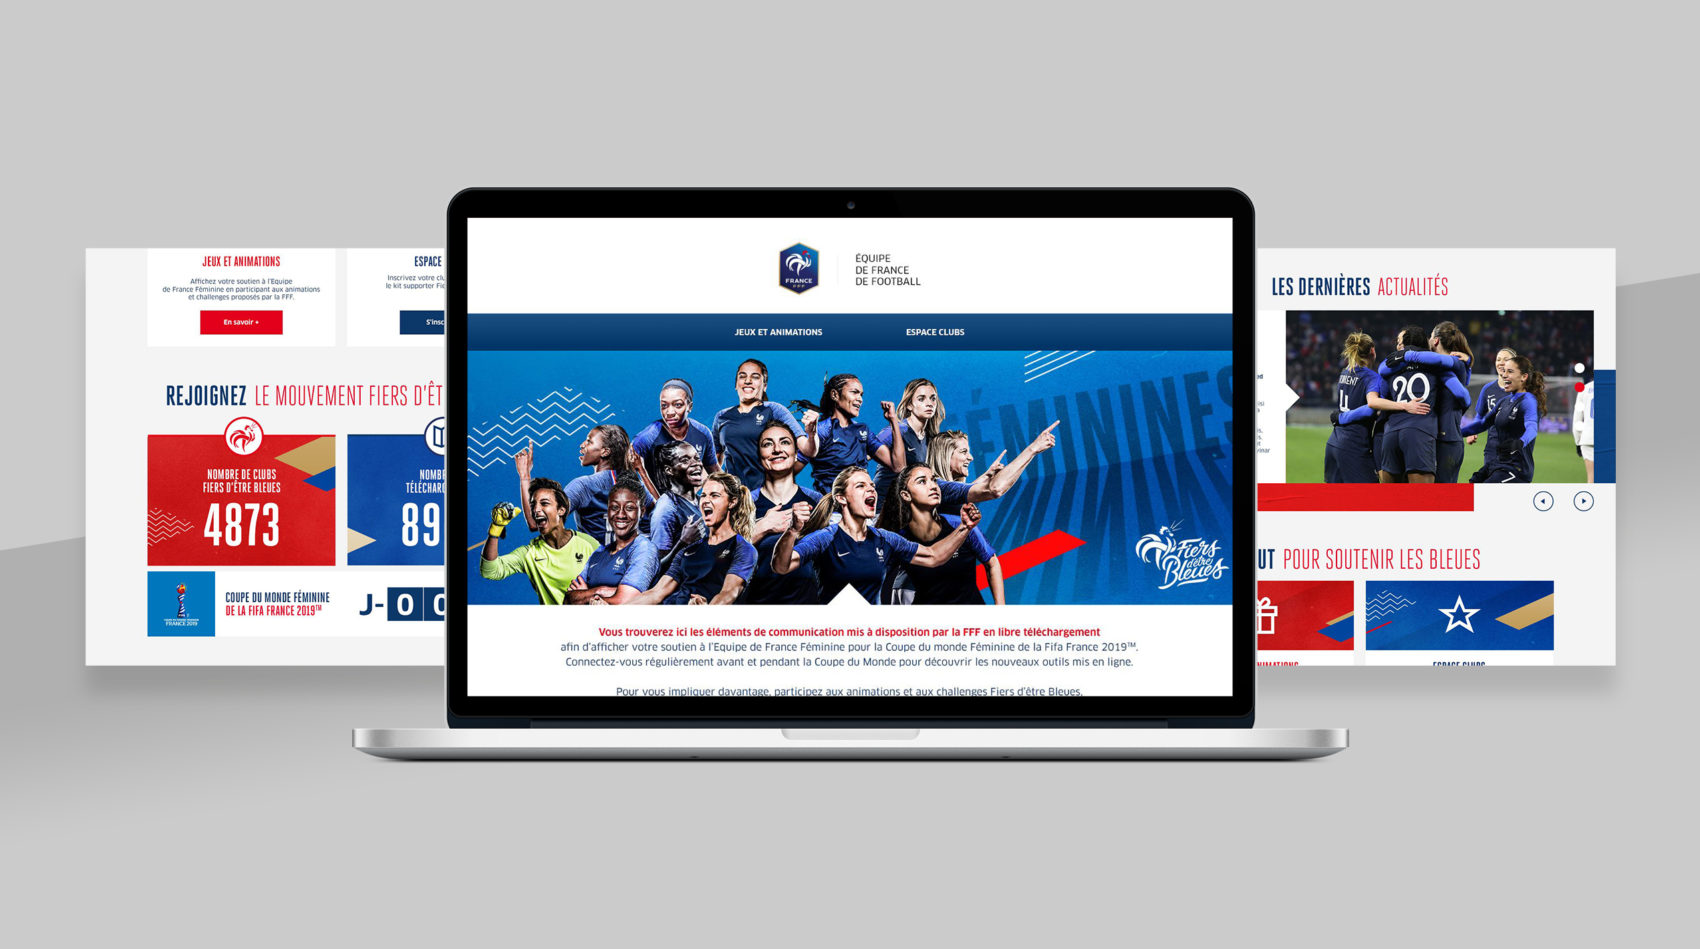 Projet_project_FFF_federation_francaise_football_french_federation_Coupe_du_Monde_Feminine_FIFA_France_2019_TM_world_cup_women_mini_site